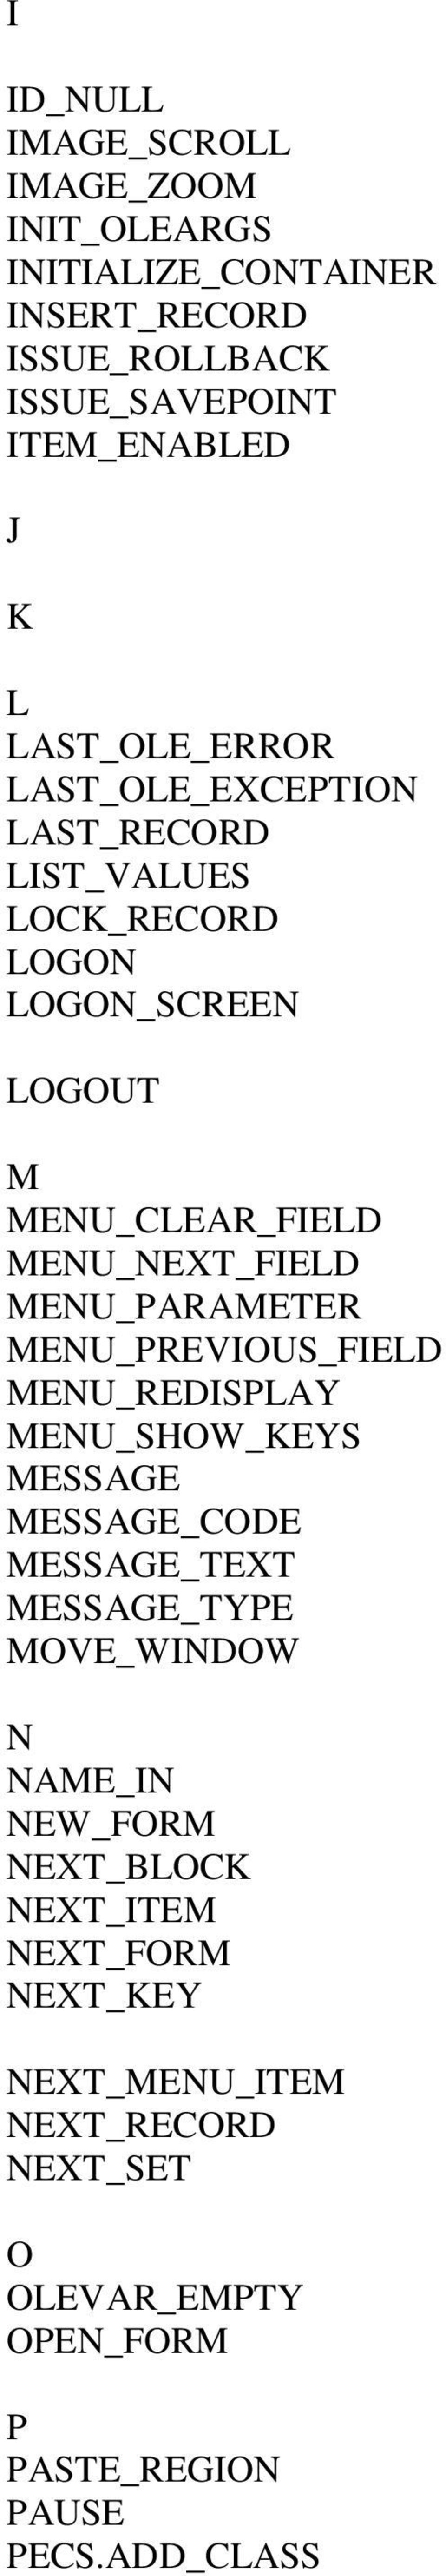 MENU_PARAMETER MENU_PREVIOUS_FIELD MENU_REDISPLAY MENU_SHOW_KEYS MESSAGE MESSAGE_CODE MESSAGE_TEXT MESSAGE_TYPE MOVE_WINDOW N NAME_IN